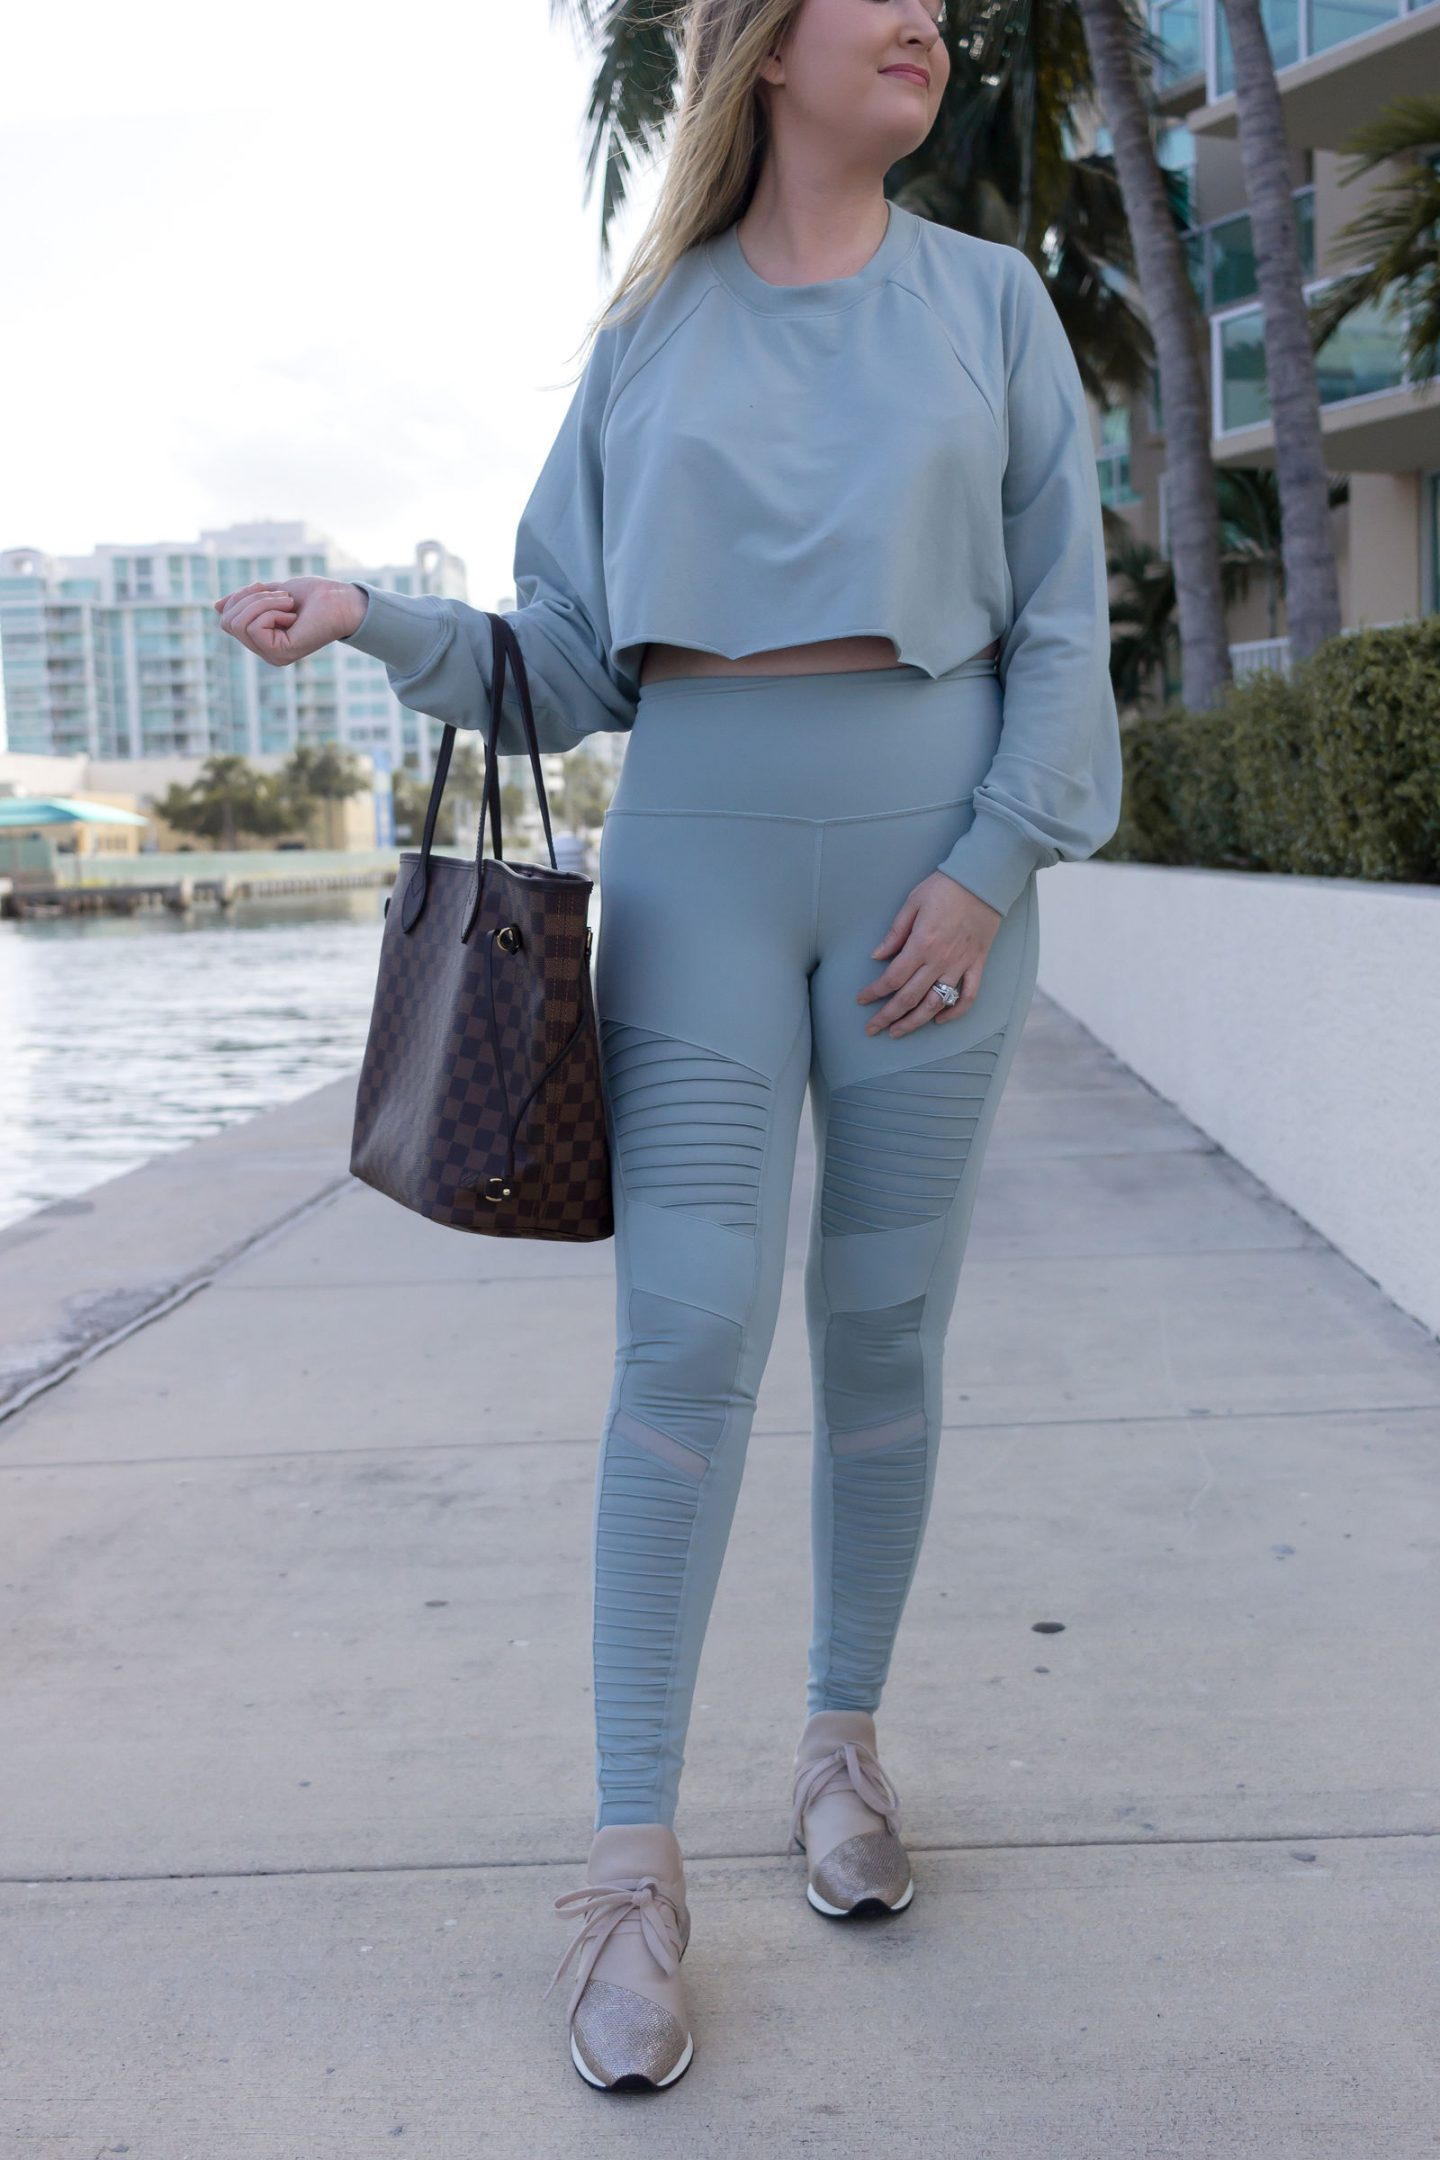 Athleisure Outfit That Will Motivate You To Hit The Gym, alo yoga, nordstrom anniversary sale athleisure, j slides zorro sneakers, louis vuitton neverfull mm damier ebene, alo yoga cropped sweater, alo yoga motto leggings, alo yoga matching outfit, matching athleisure, nsale